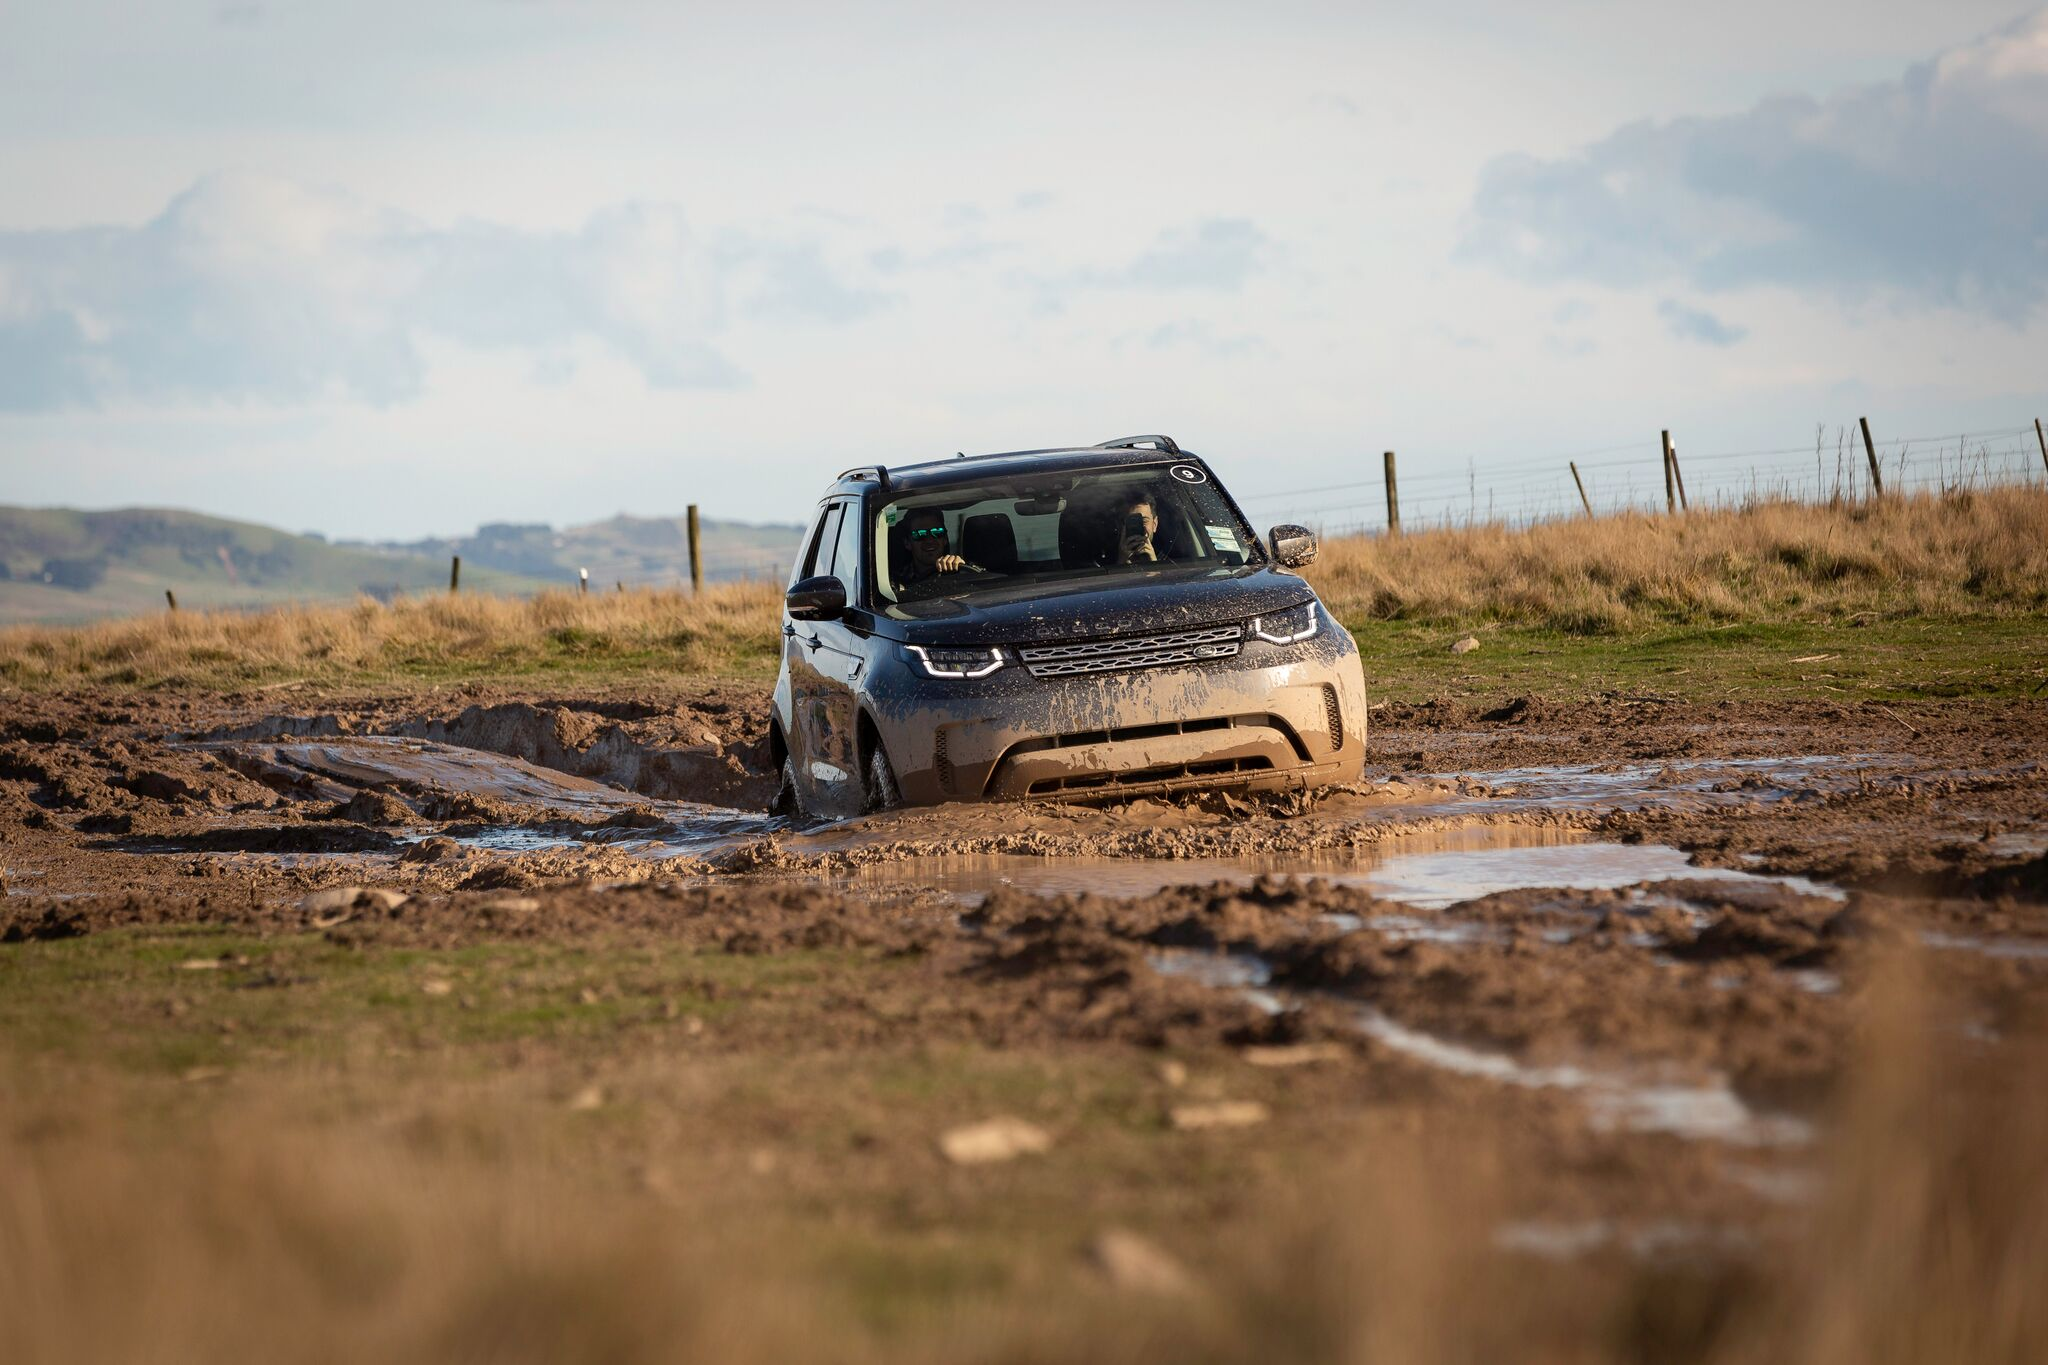 LAND_ROVER_EVENT-3242_preview.jpeg